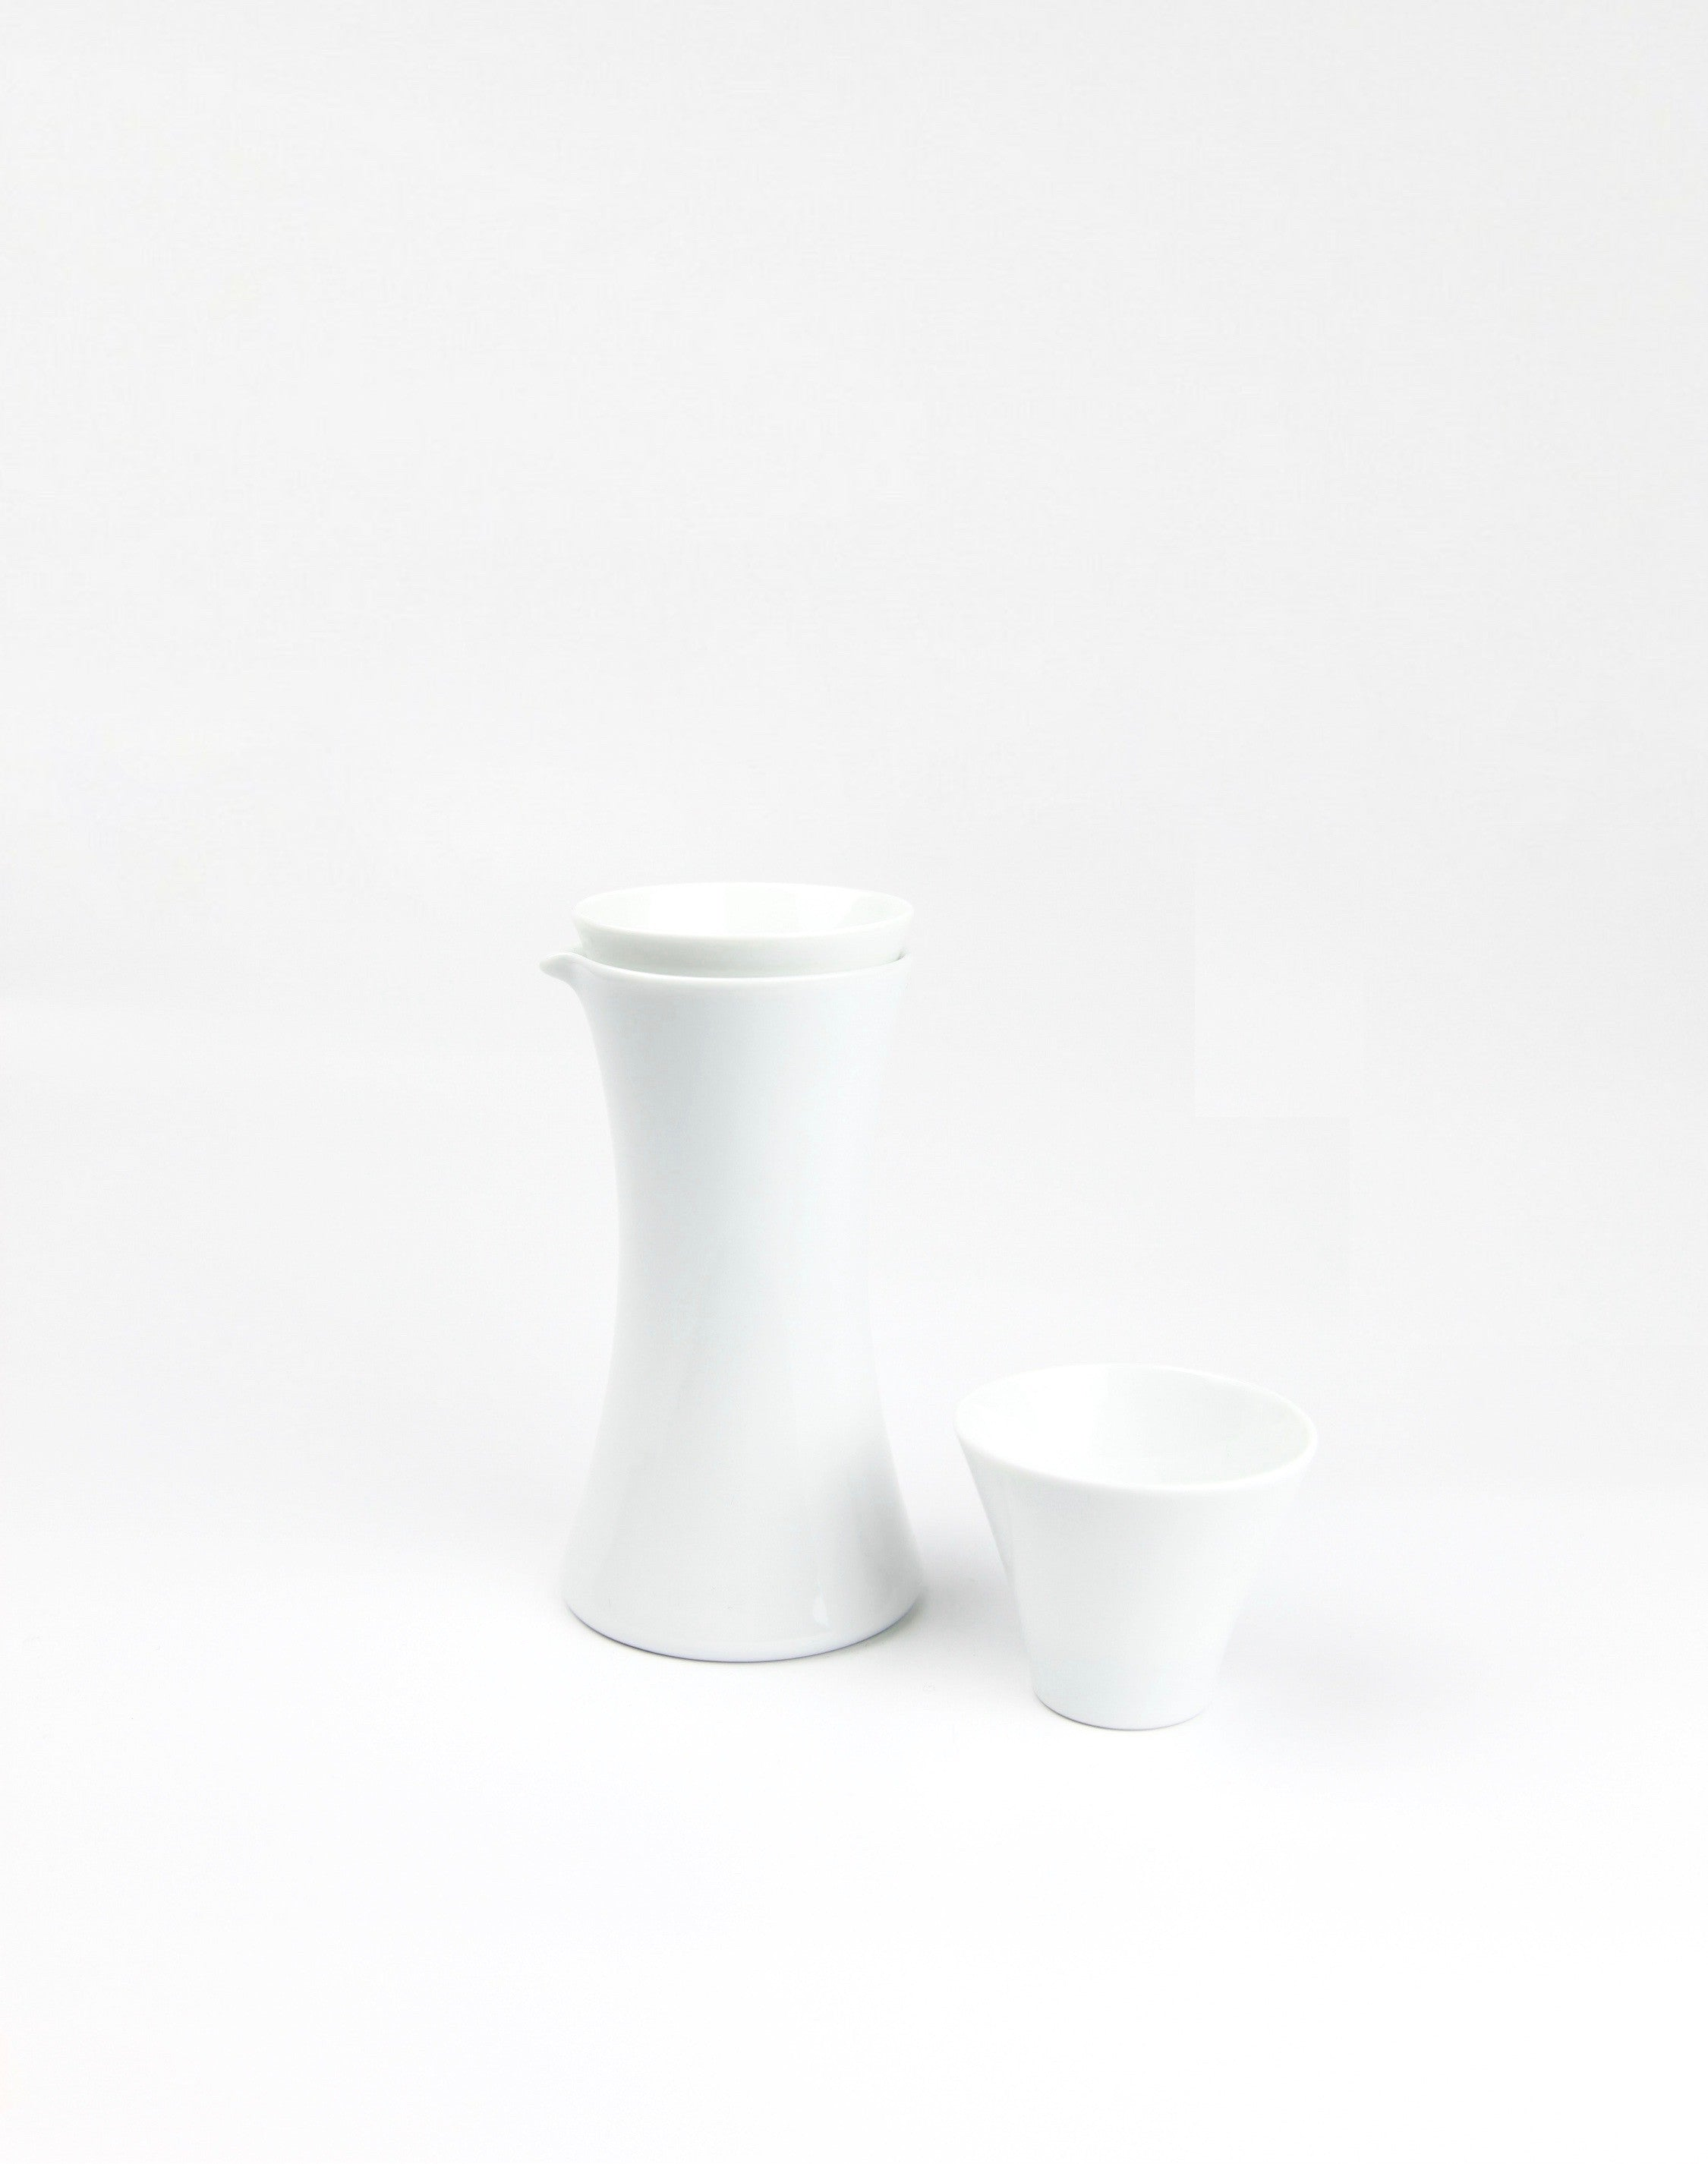 Sake set bottle cup